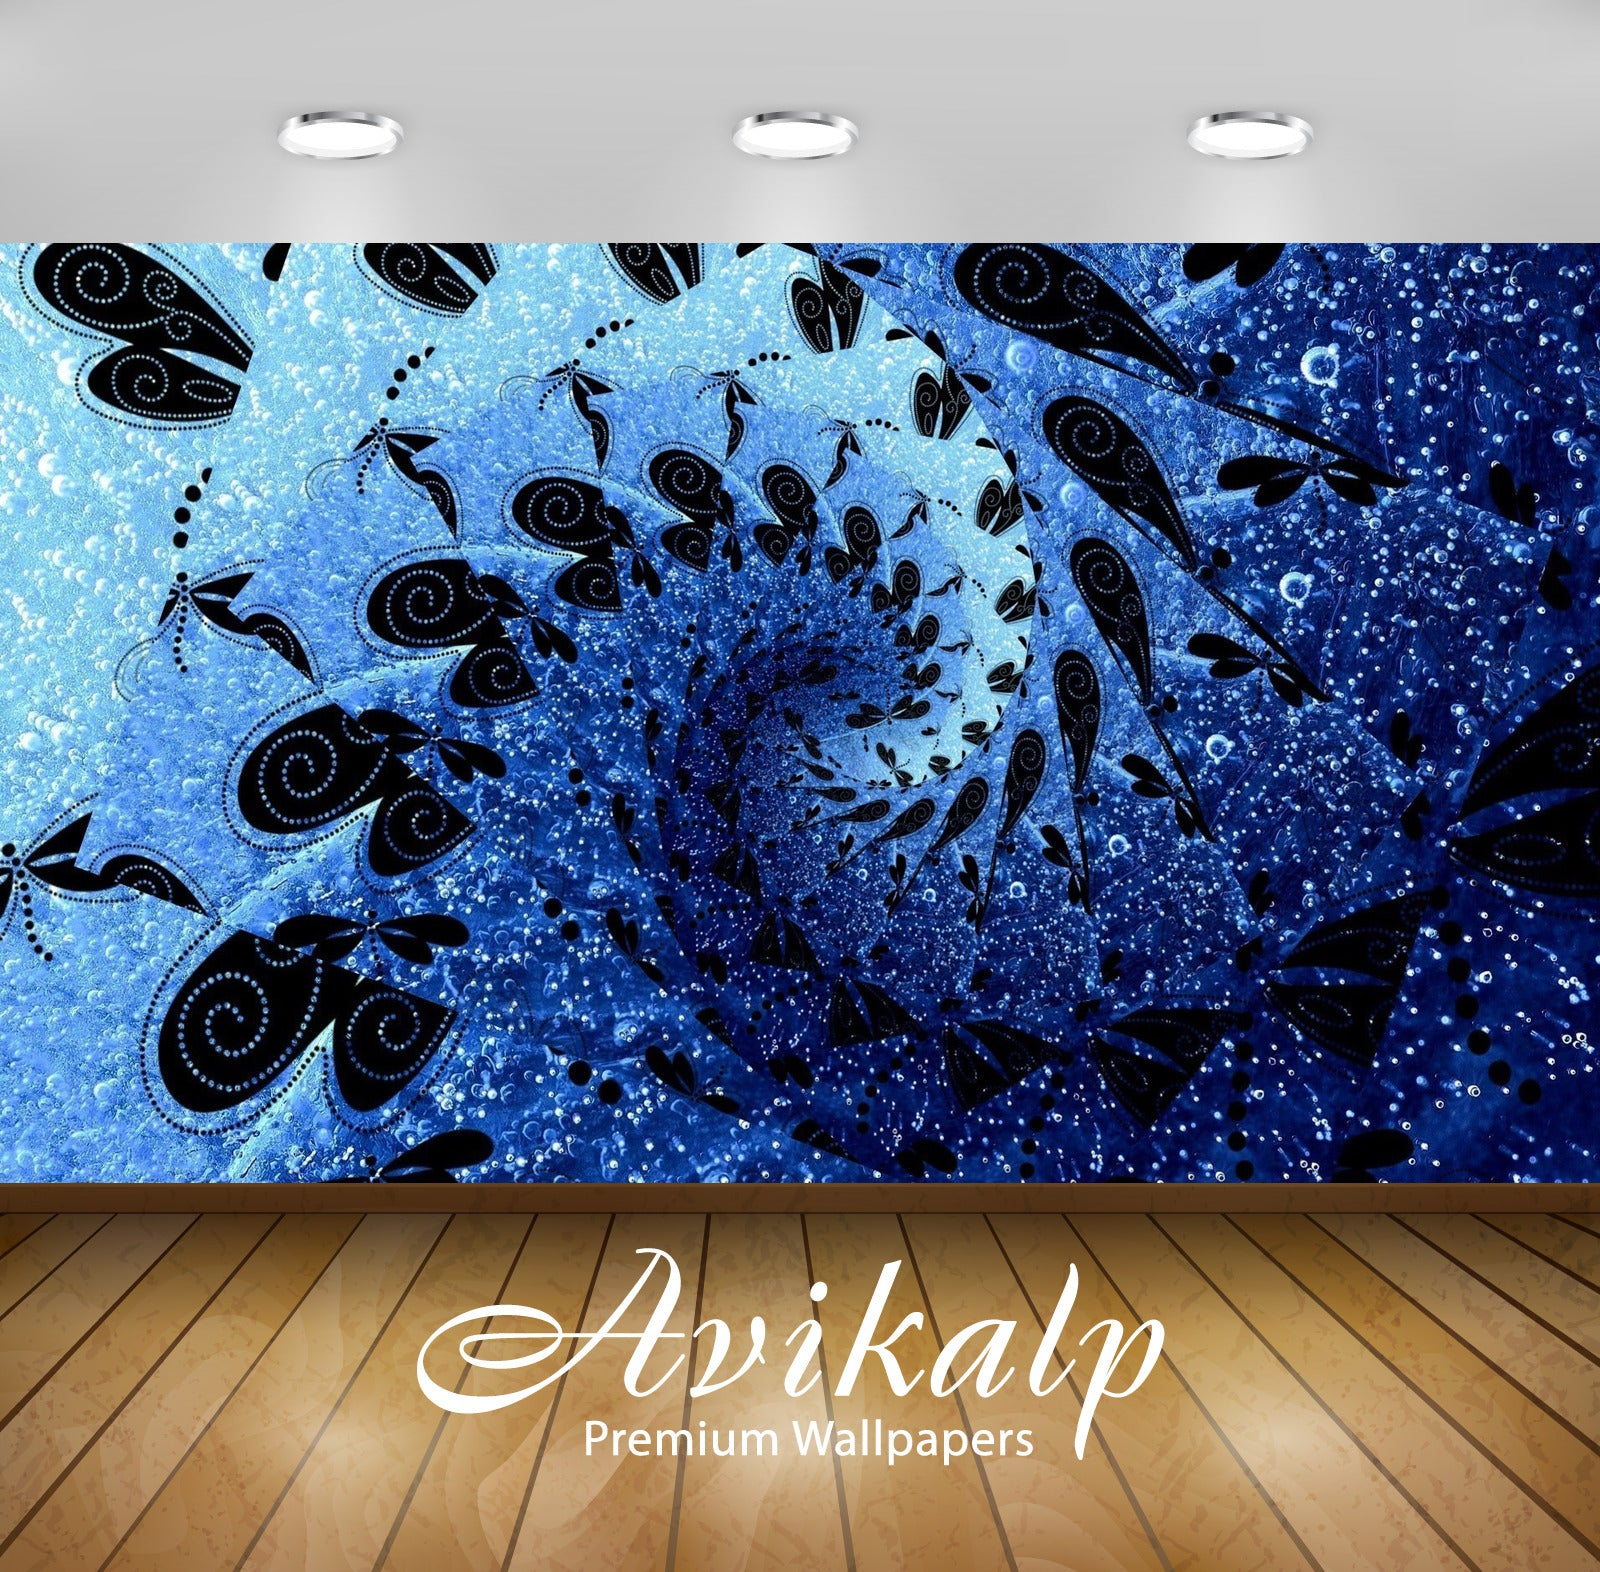 Avikalp Exclusive Awi4298 Dragonfly Spiral Full HD Wallpapers for Living room, Hall, Kids Room, Kitc